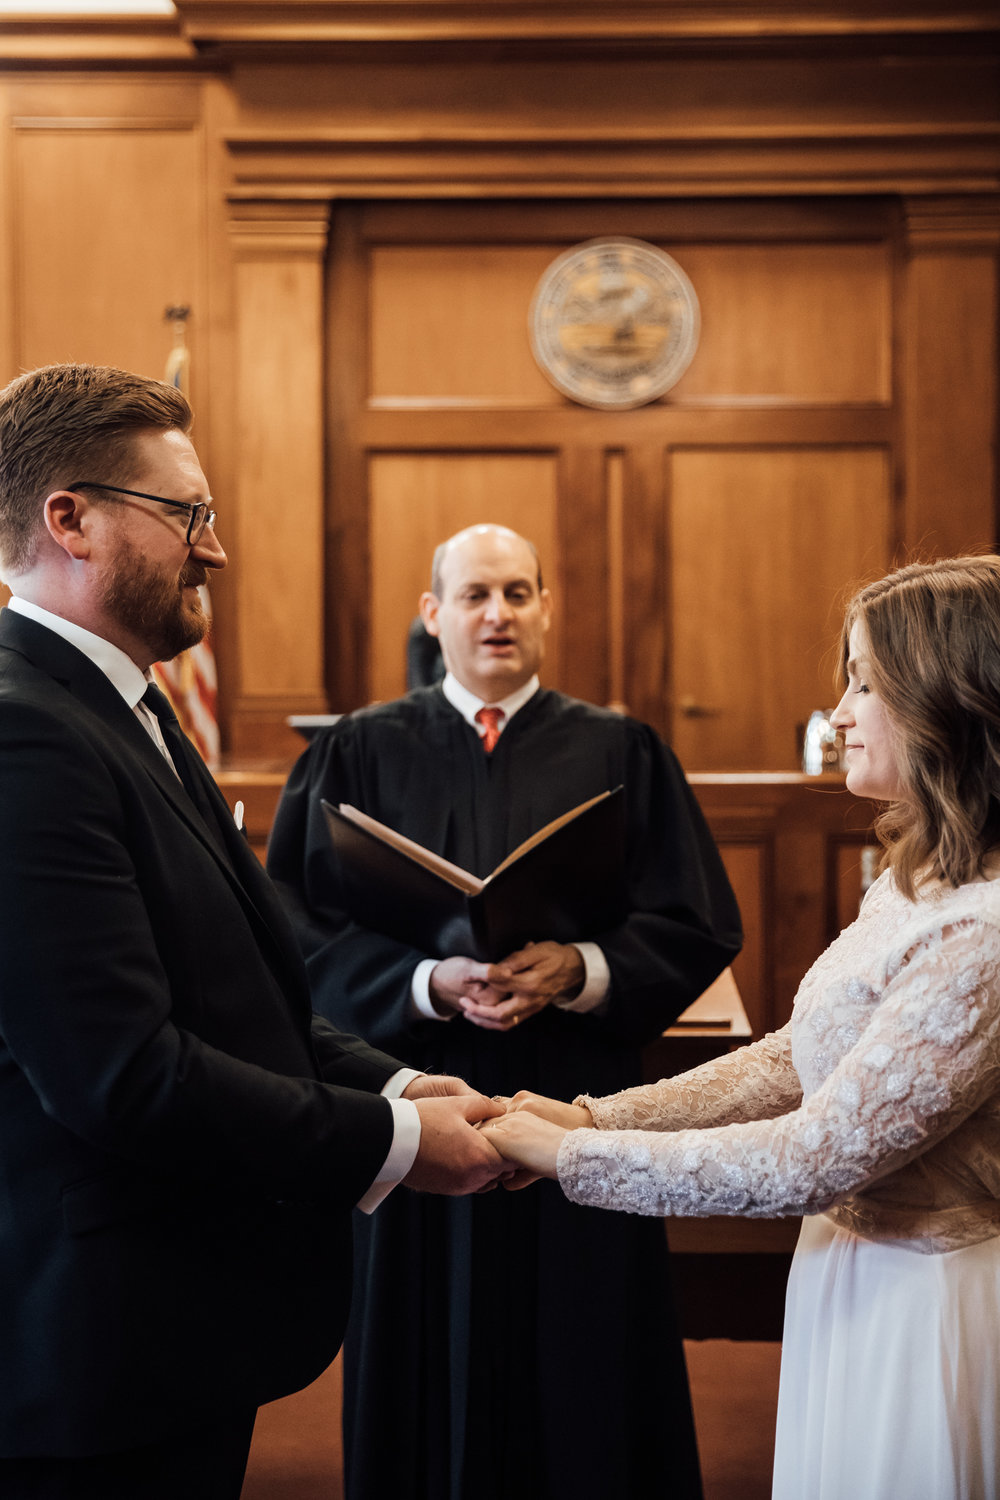 memphis-courthouse-elopement-thewarmtharoundyou-amanda-michael (33 of 143).jpg